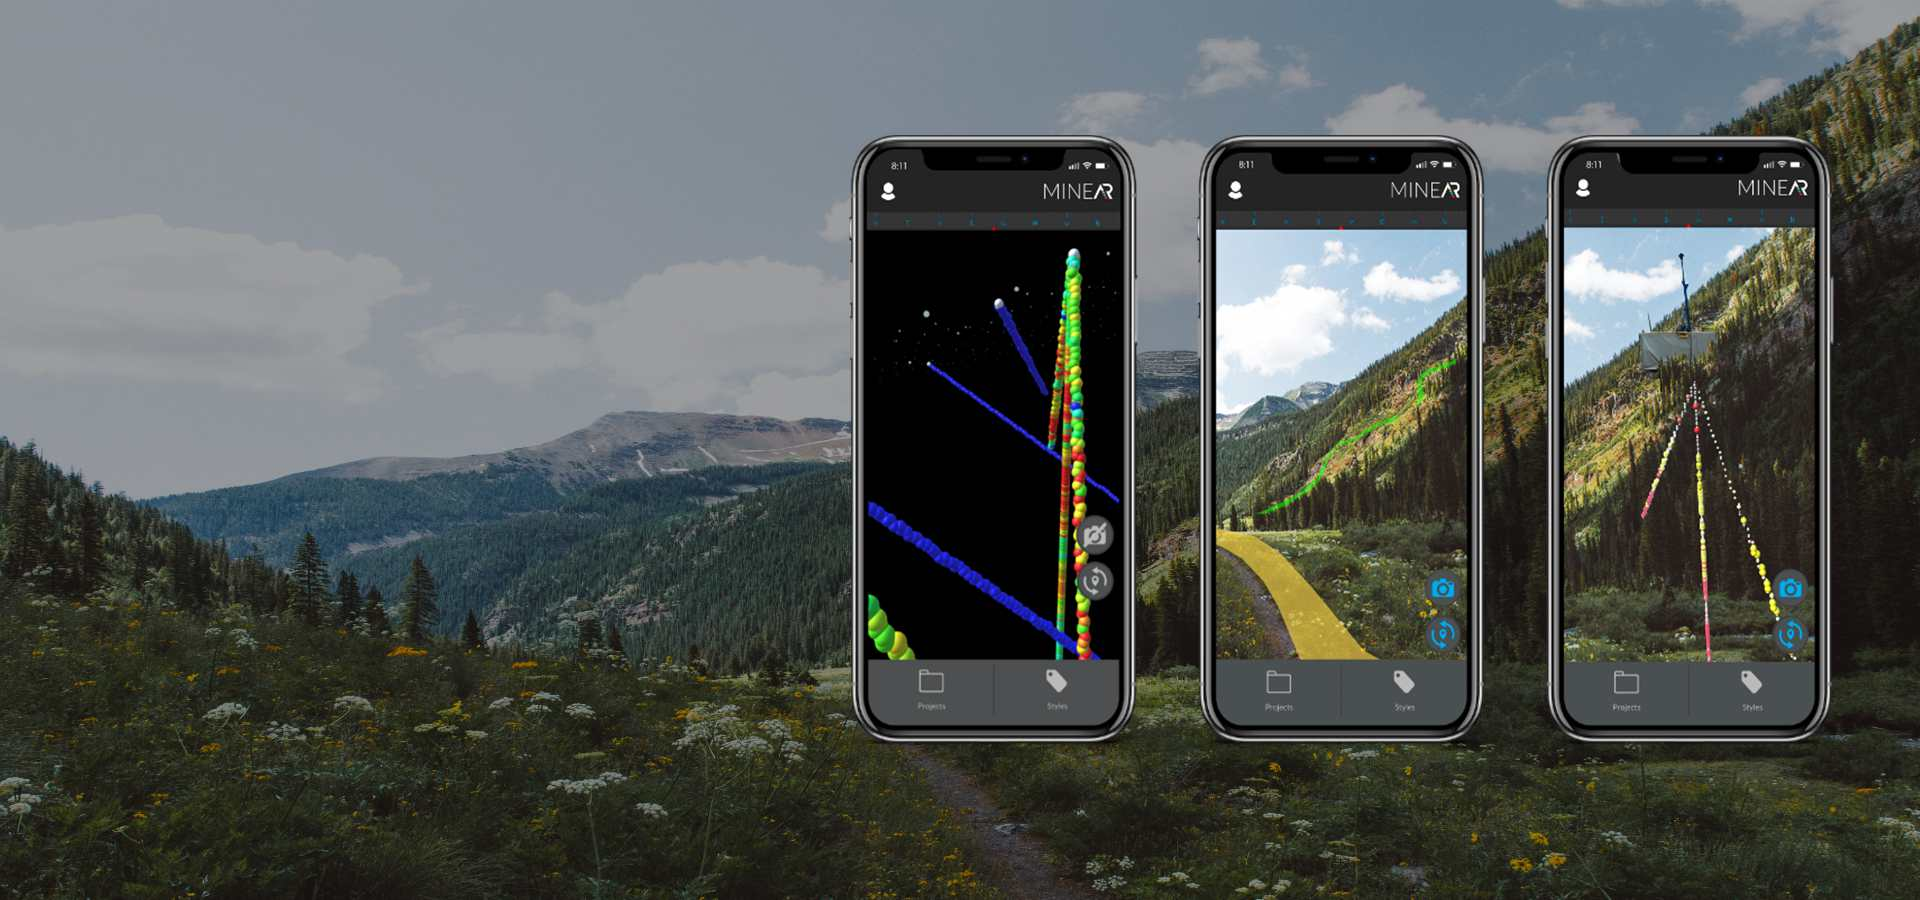 MINEAR: View gIS data on your phone in the field.